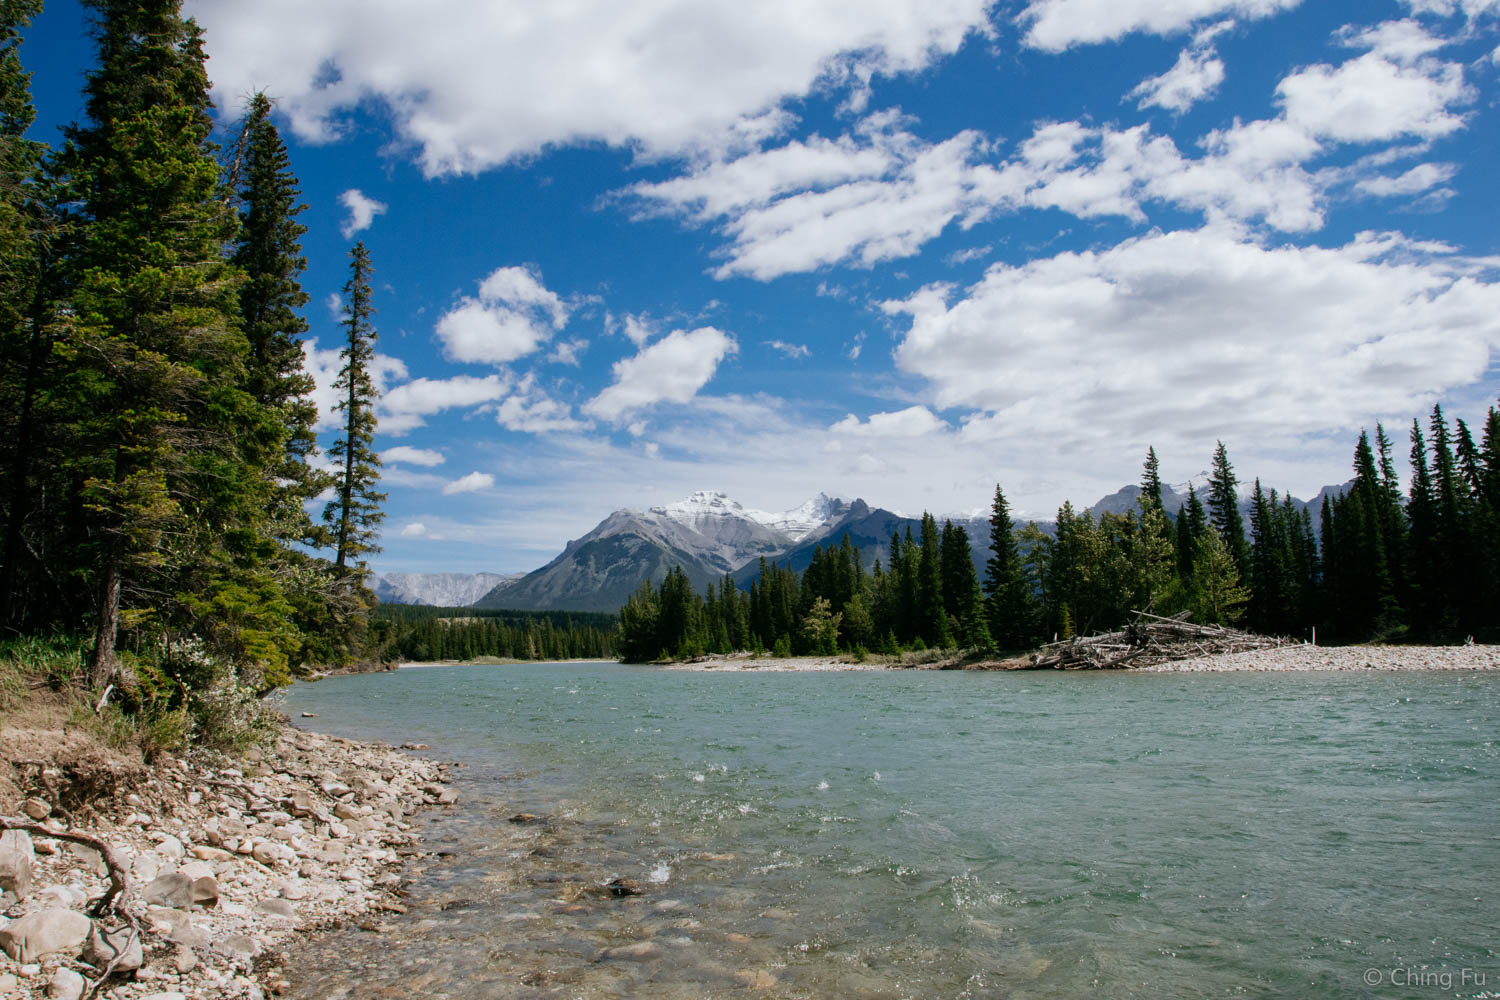 Ride down to the Bow River.